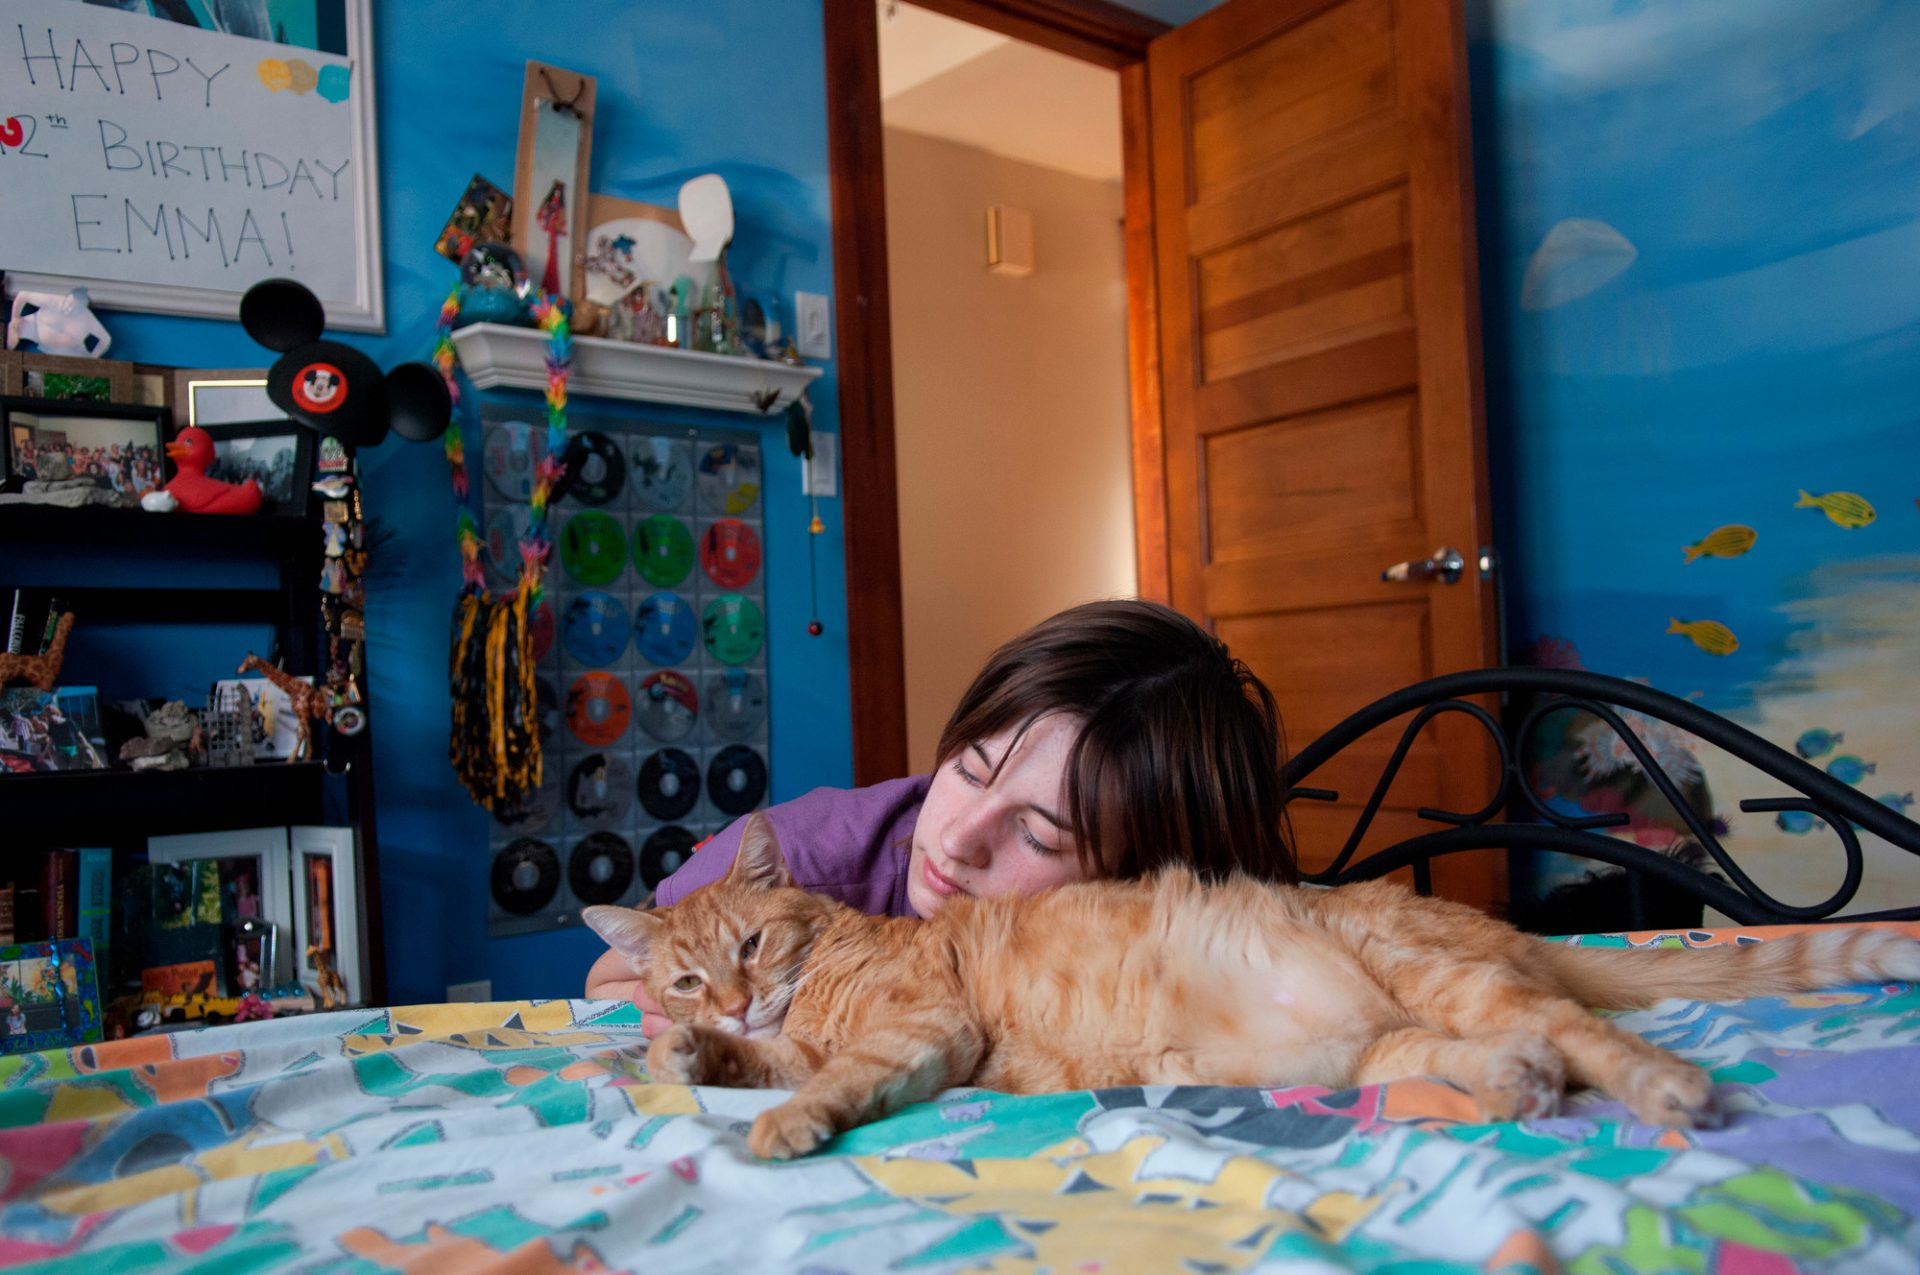 Photo: A 14-year-old girl with her pet cat.